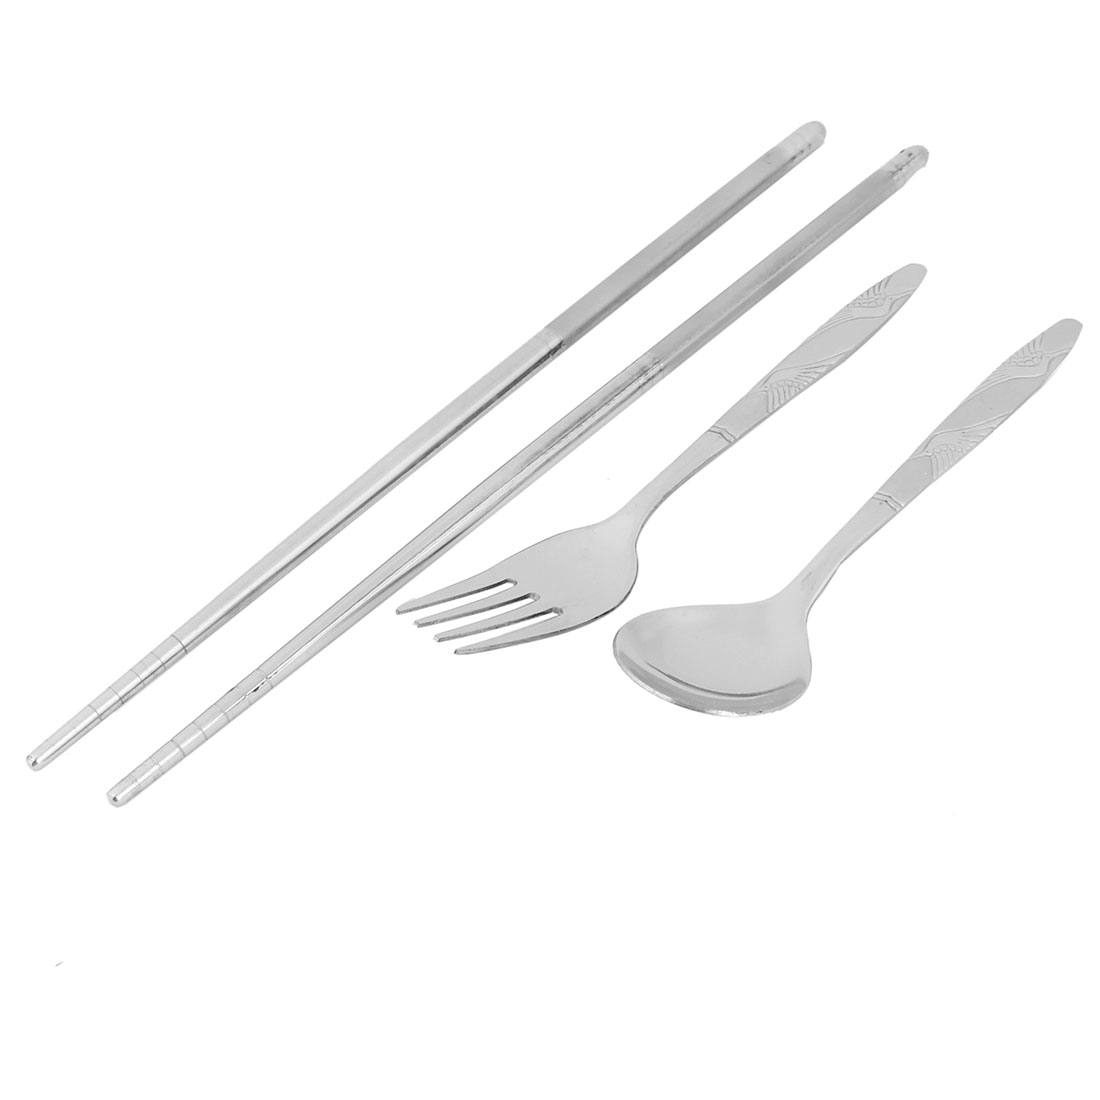 Silver Tone Stainless Steel Tableware Chopsticks Spoon Fork Cutlery Set